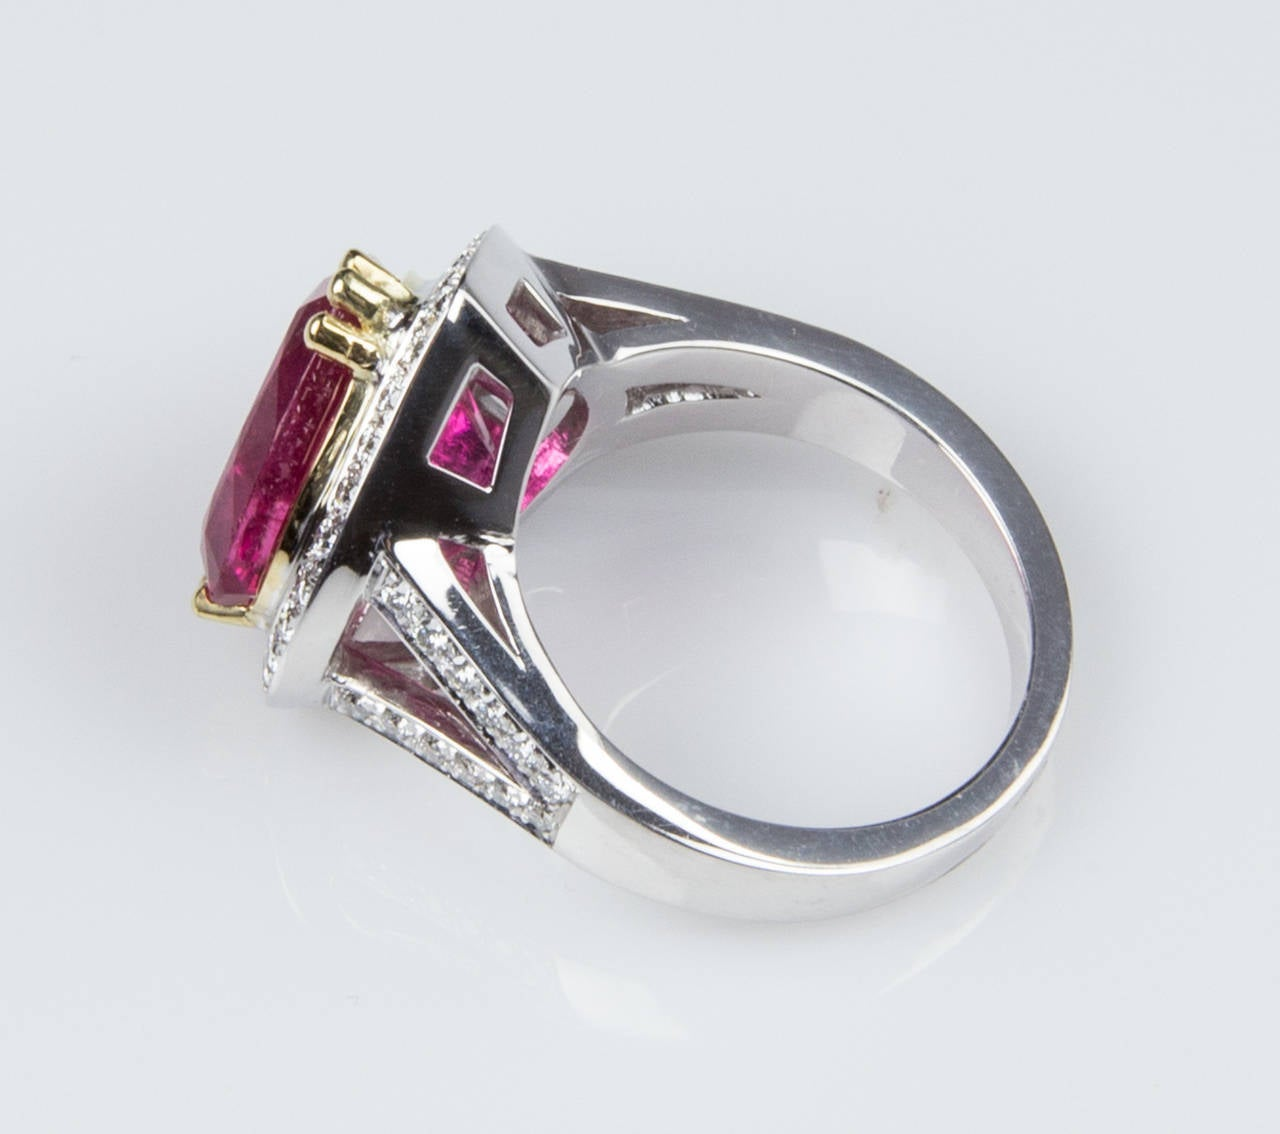 6.97 Carat Rubellite Heart Diamond Gold Statement Ring For Sale 1